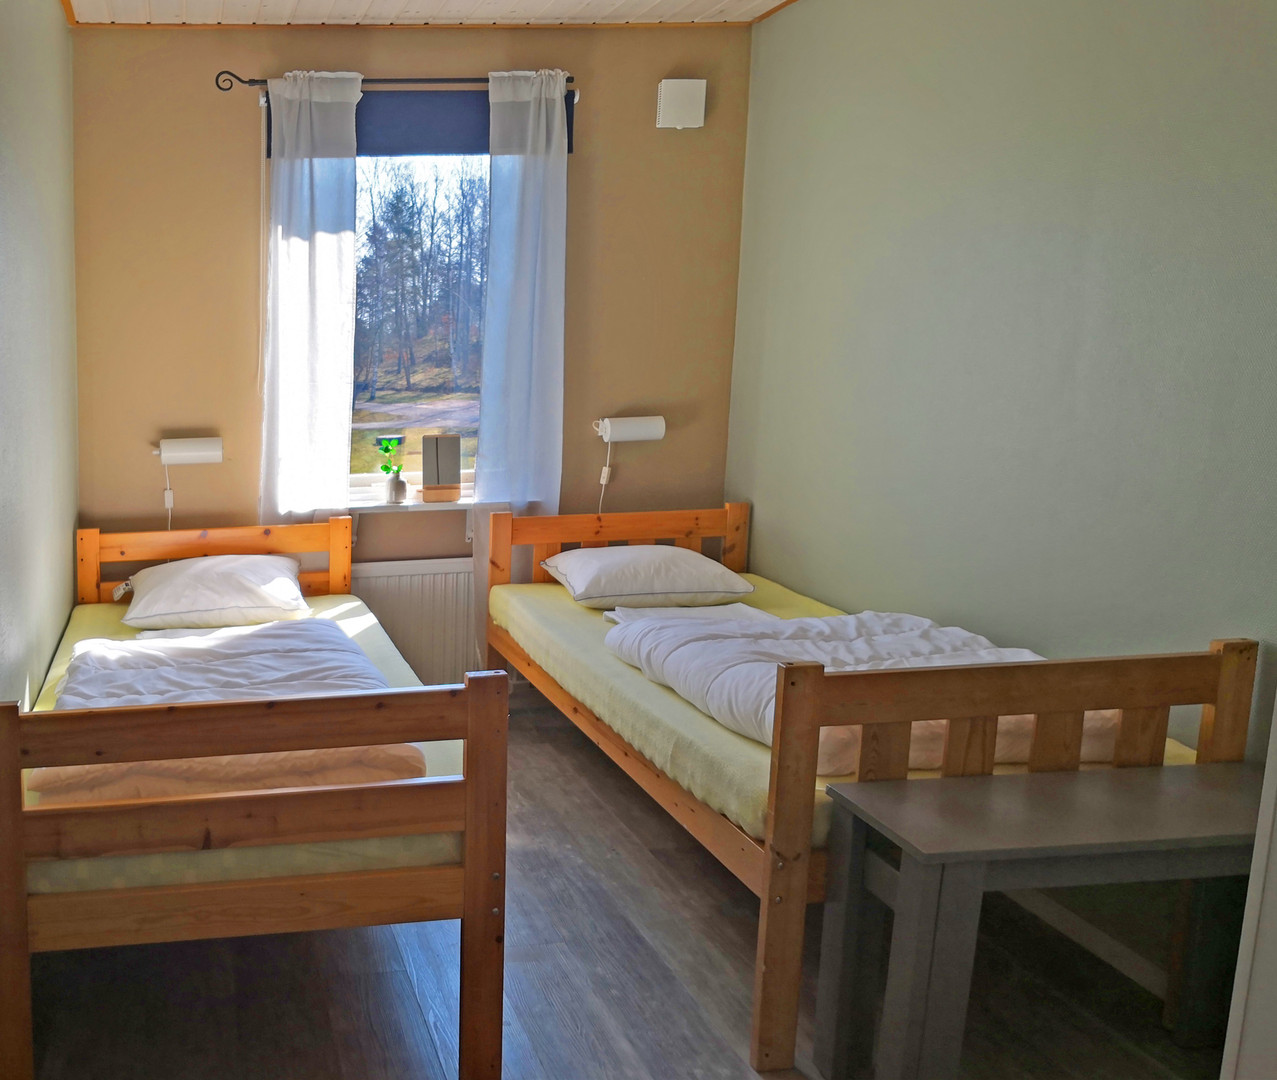 The two-bed rooms